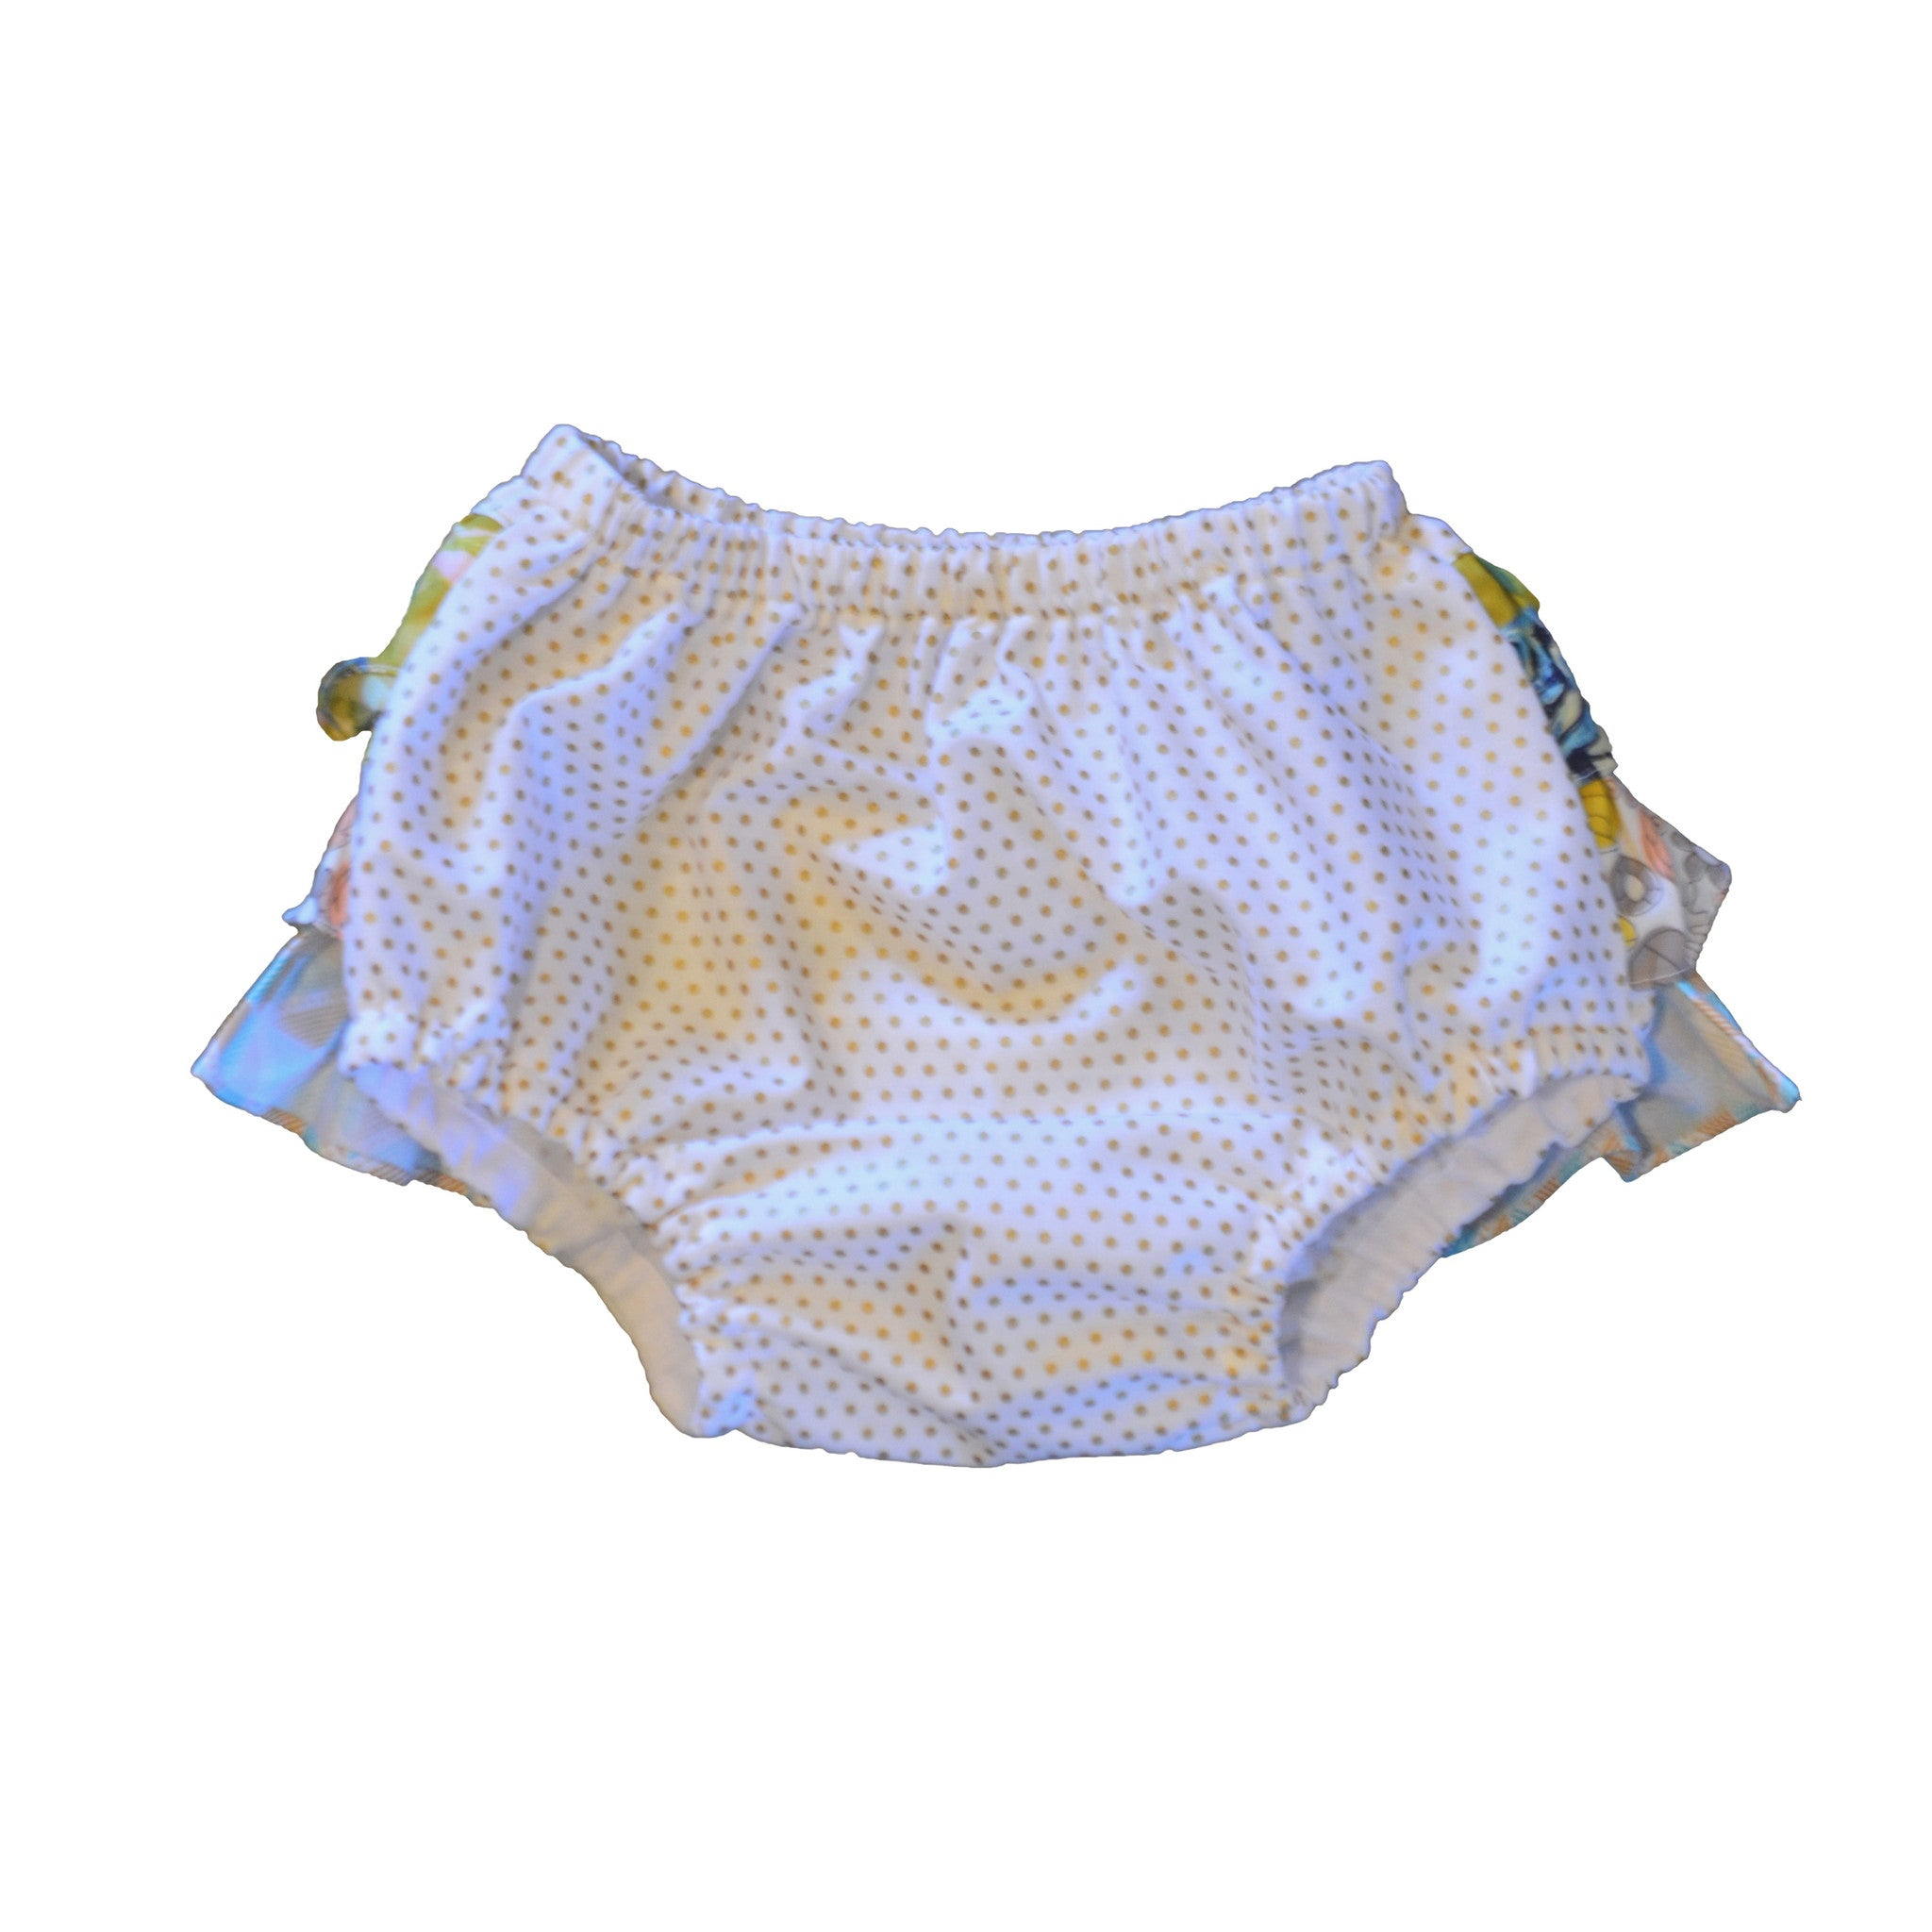 Bay Girls Designer Bloomers, Organic Cotton, Handmade in Sydney